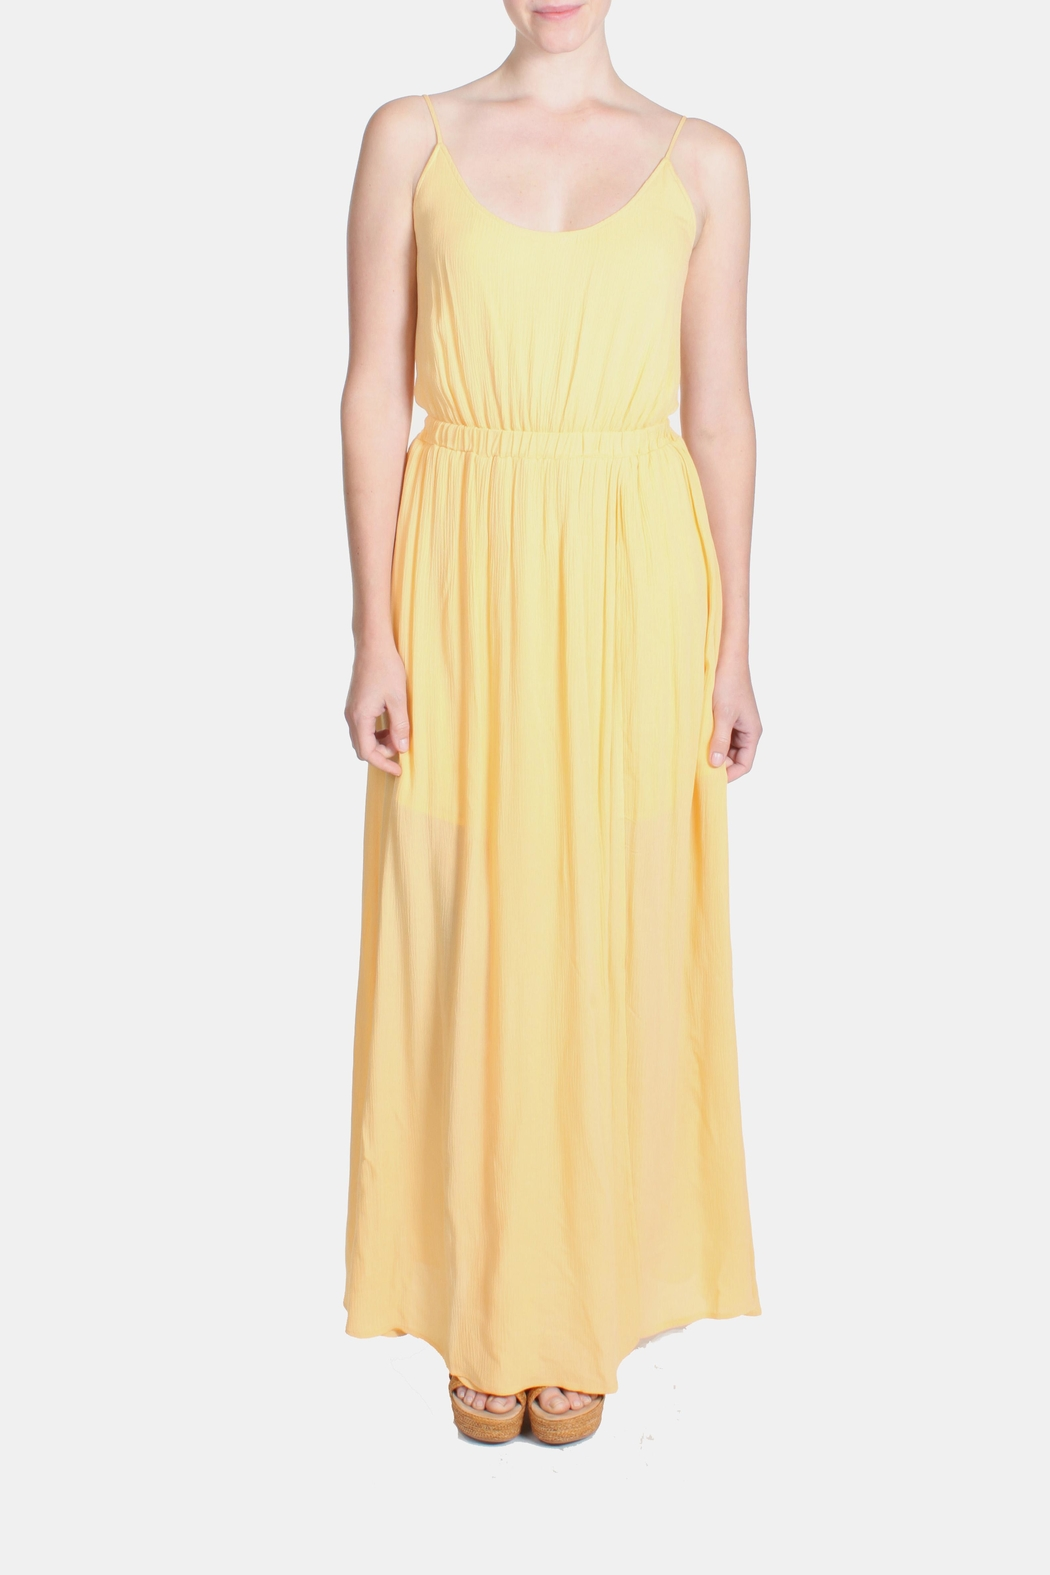 rokoko Yellow Corset Dress - Front Full Image